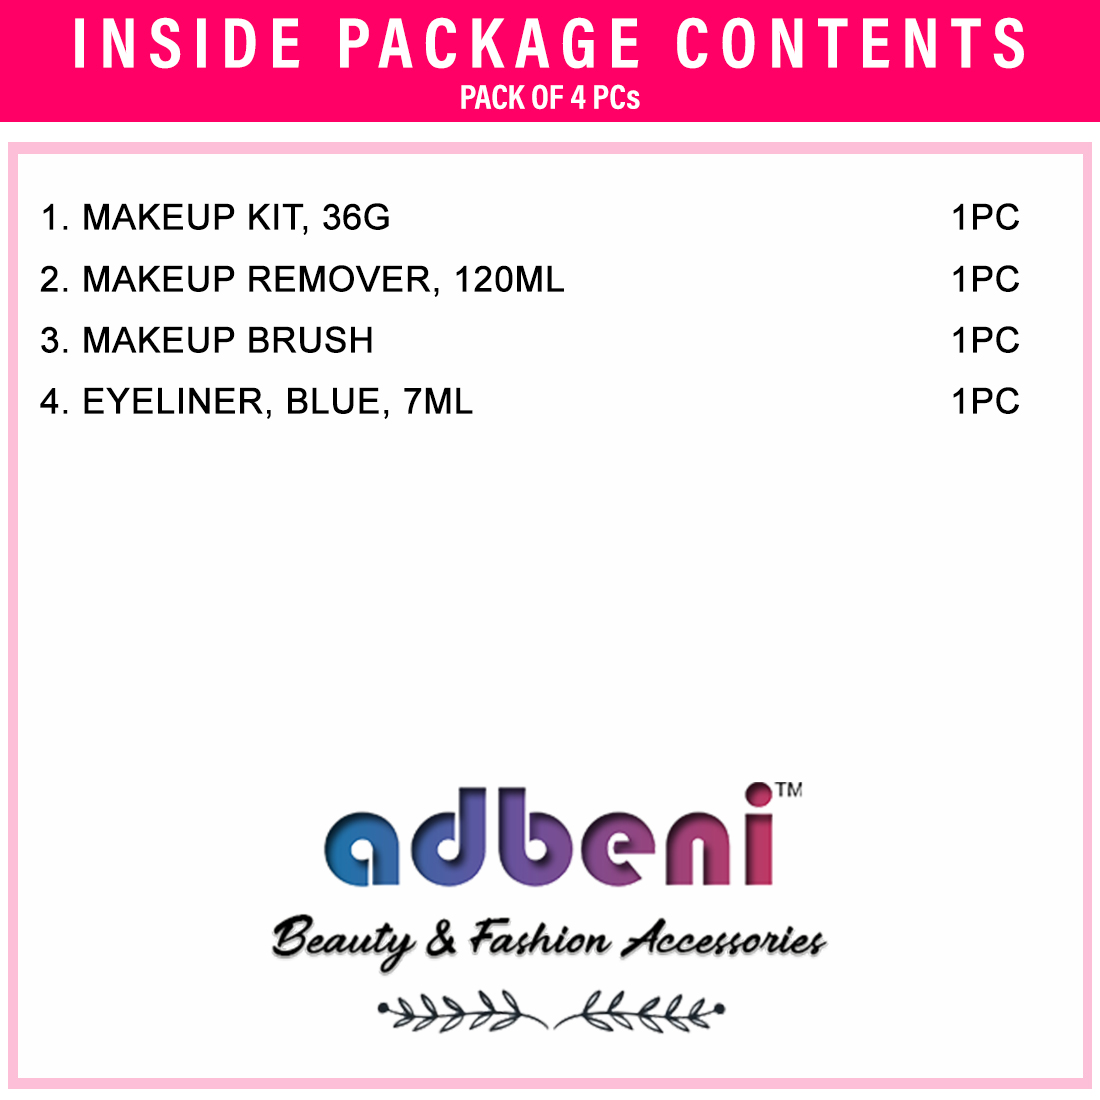 Adbeni Makeup Brush- Makeup Kit- Makeup RemoverBlue Eyeliner- Pack of 4- (GC879)